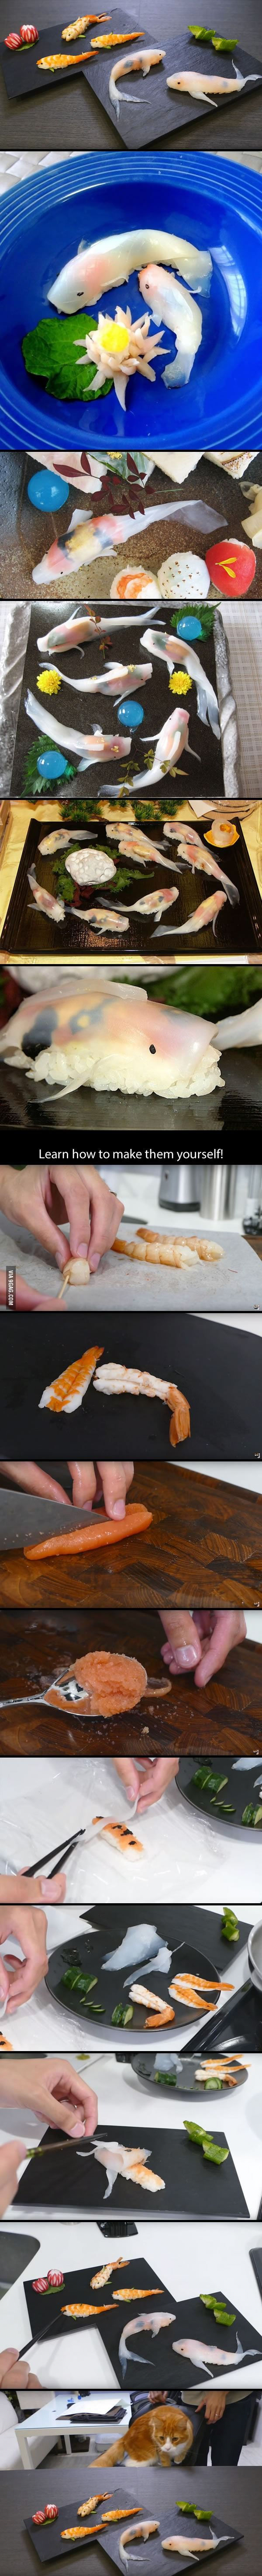 This Guy Makes Sushi That Looks Like Real-Life Koi ... it IS beautiful but I couldn't eat it this way!!